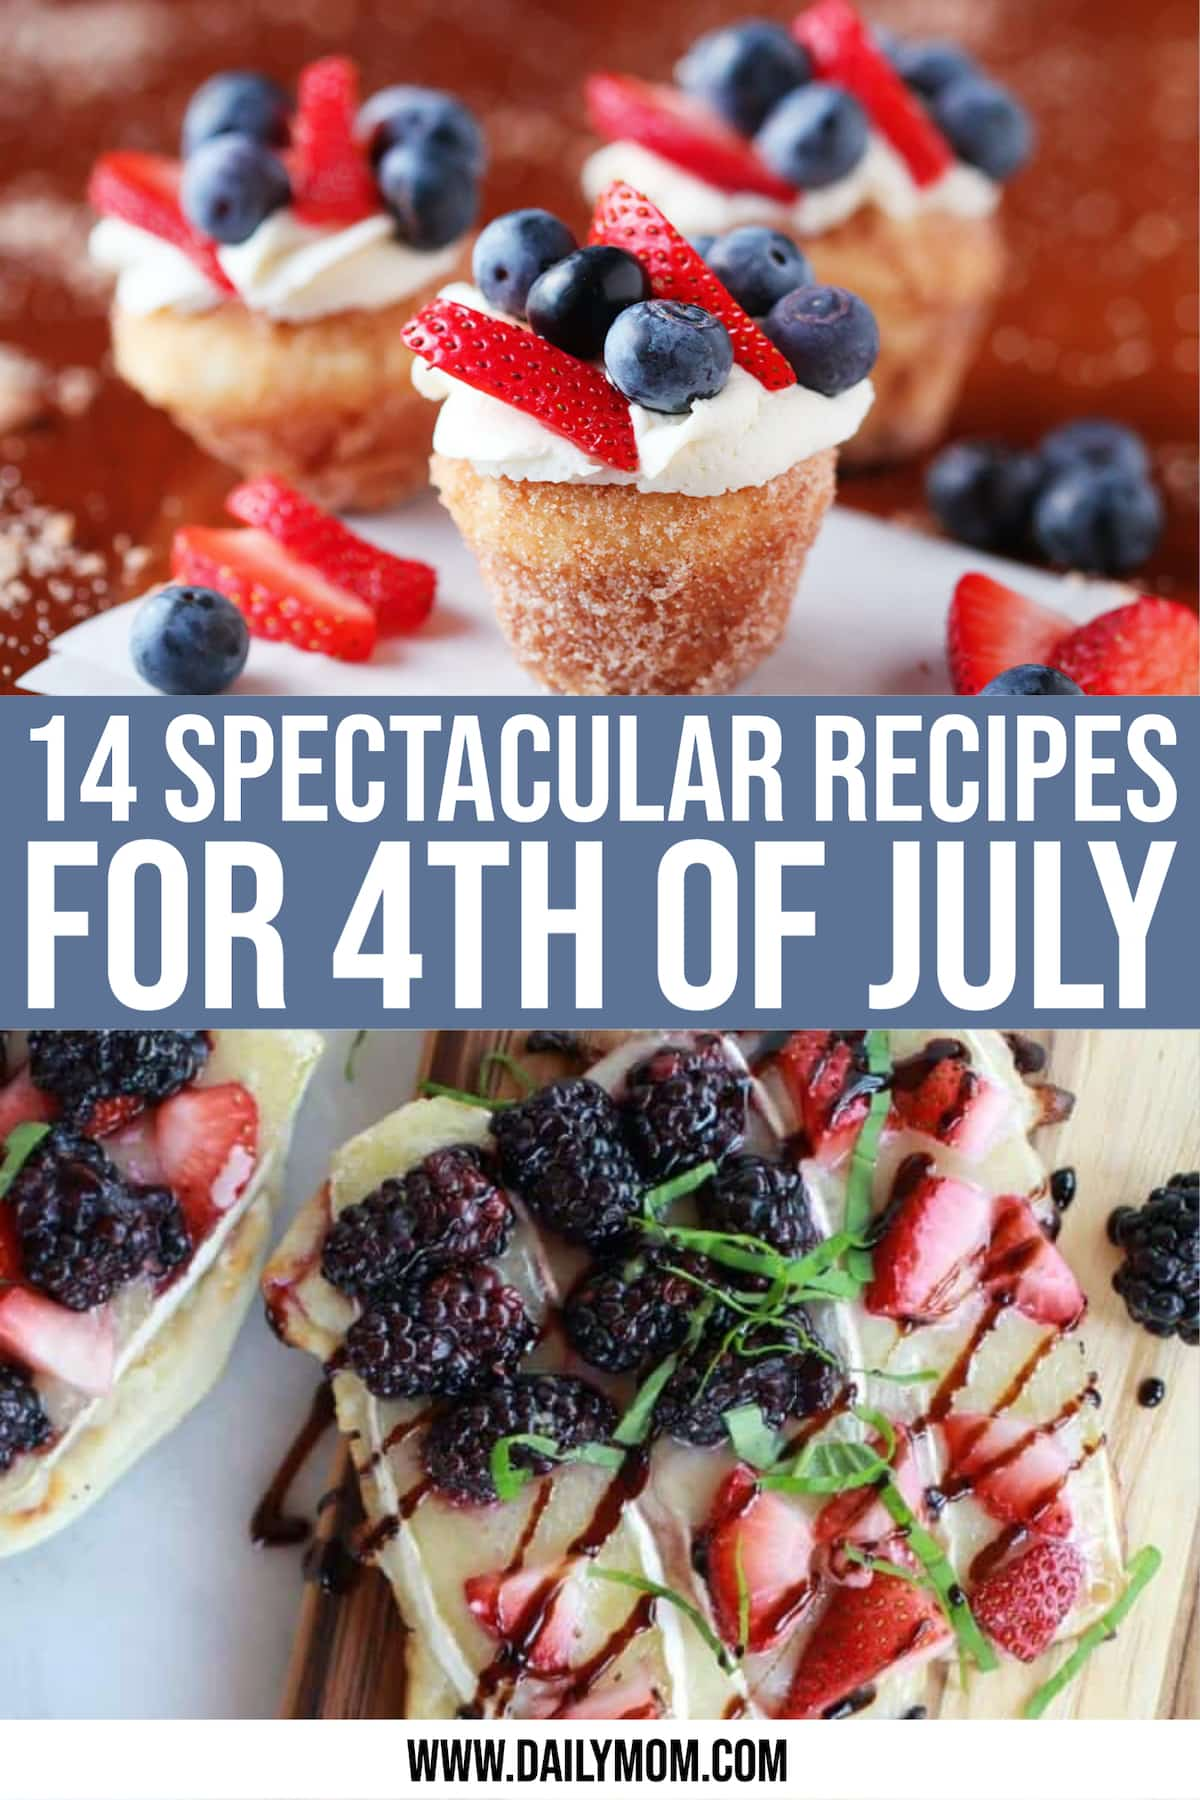 daily-mom-parent-portal-Recipes-For-4th-Of-July